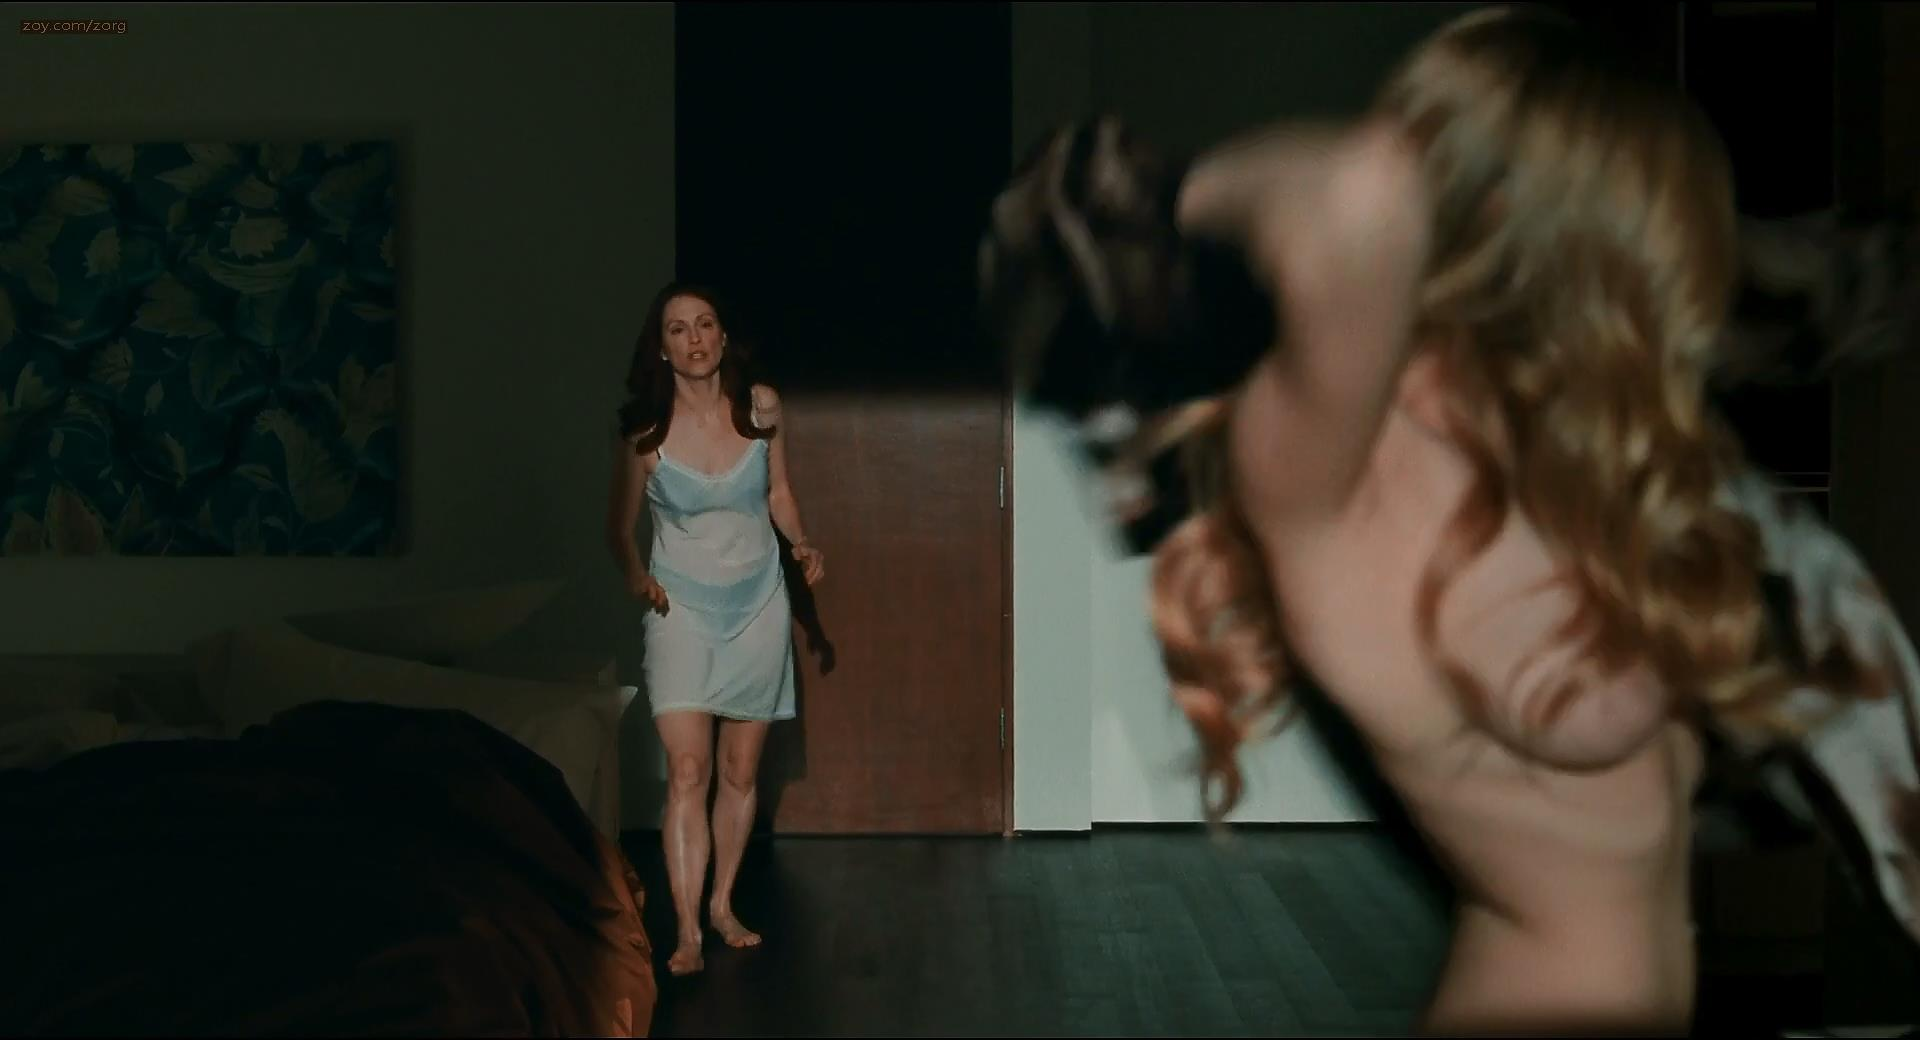 Pity, that Julianne moore nude rapidshare are